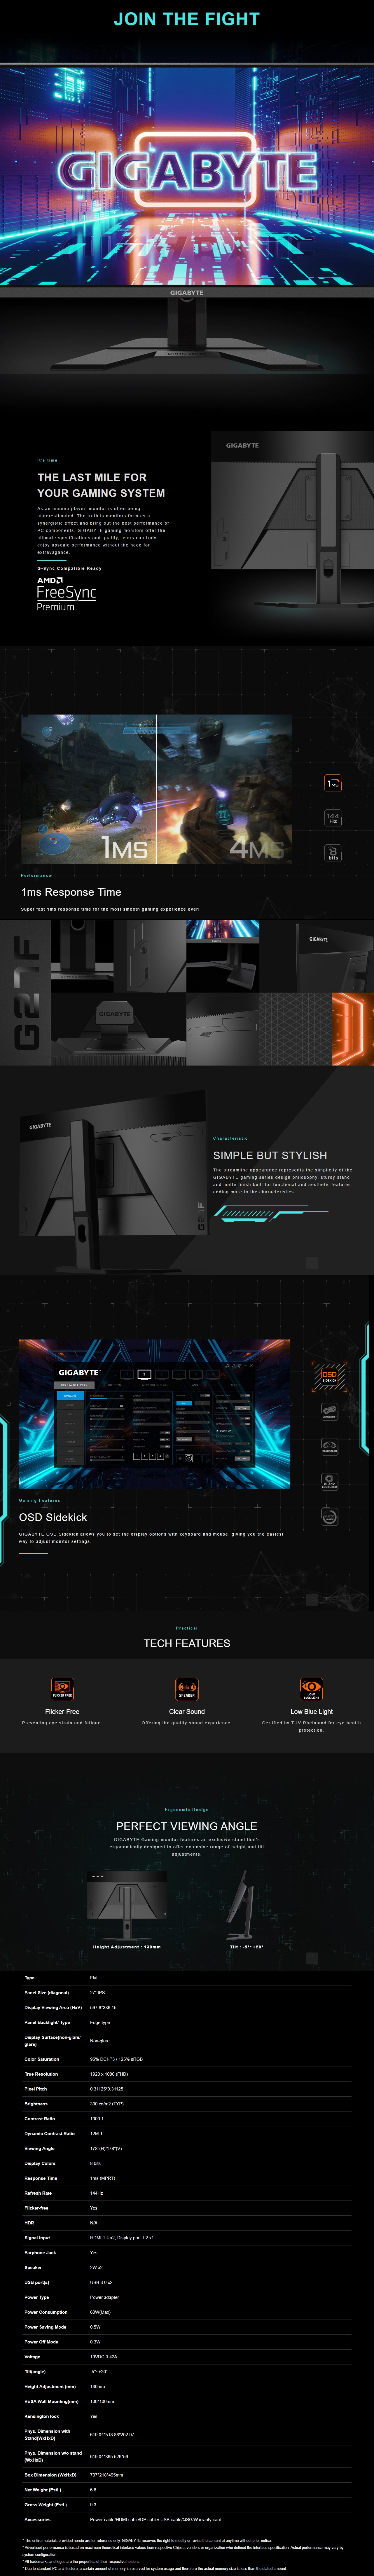 """A large marketing image providing additional information about the product Gigabyte G27F 27"""" Full HD FreeSync 1MS 144Hz IPS LED Gaming Monitor - Additional alt info not provided"""